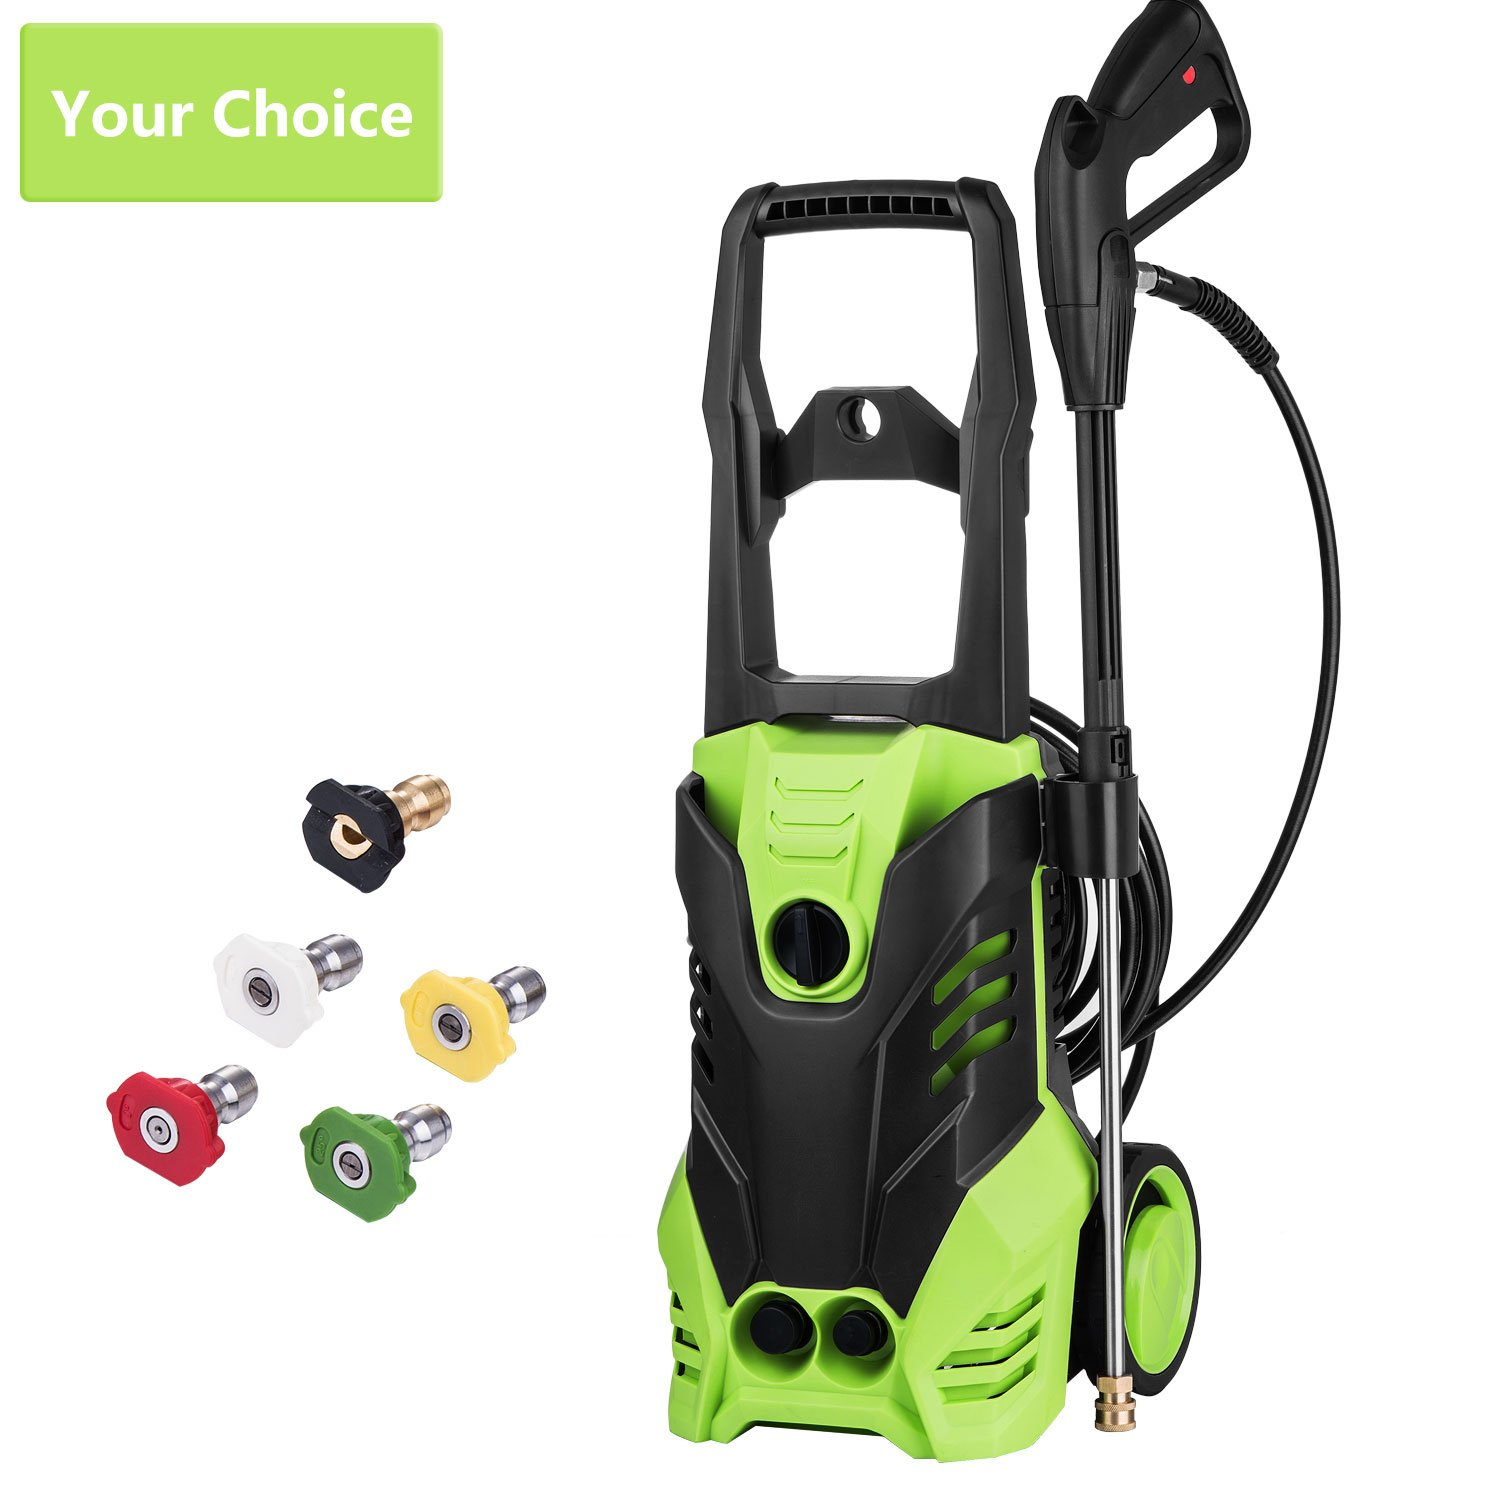 Meditool Electric Pressure Washer 3000 PSI High Pressure Power Washer Machine with Power Hose Gun Turbo Wand 5 Interchangeable Nozzles